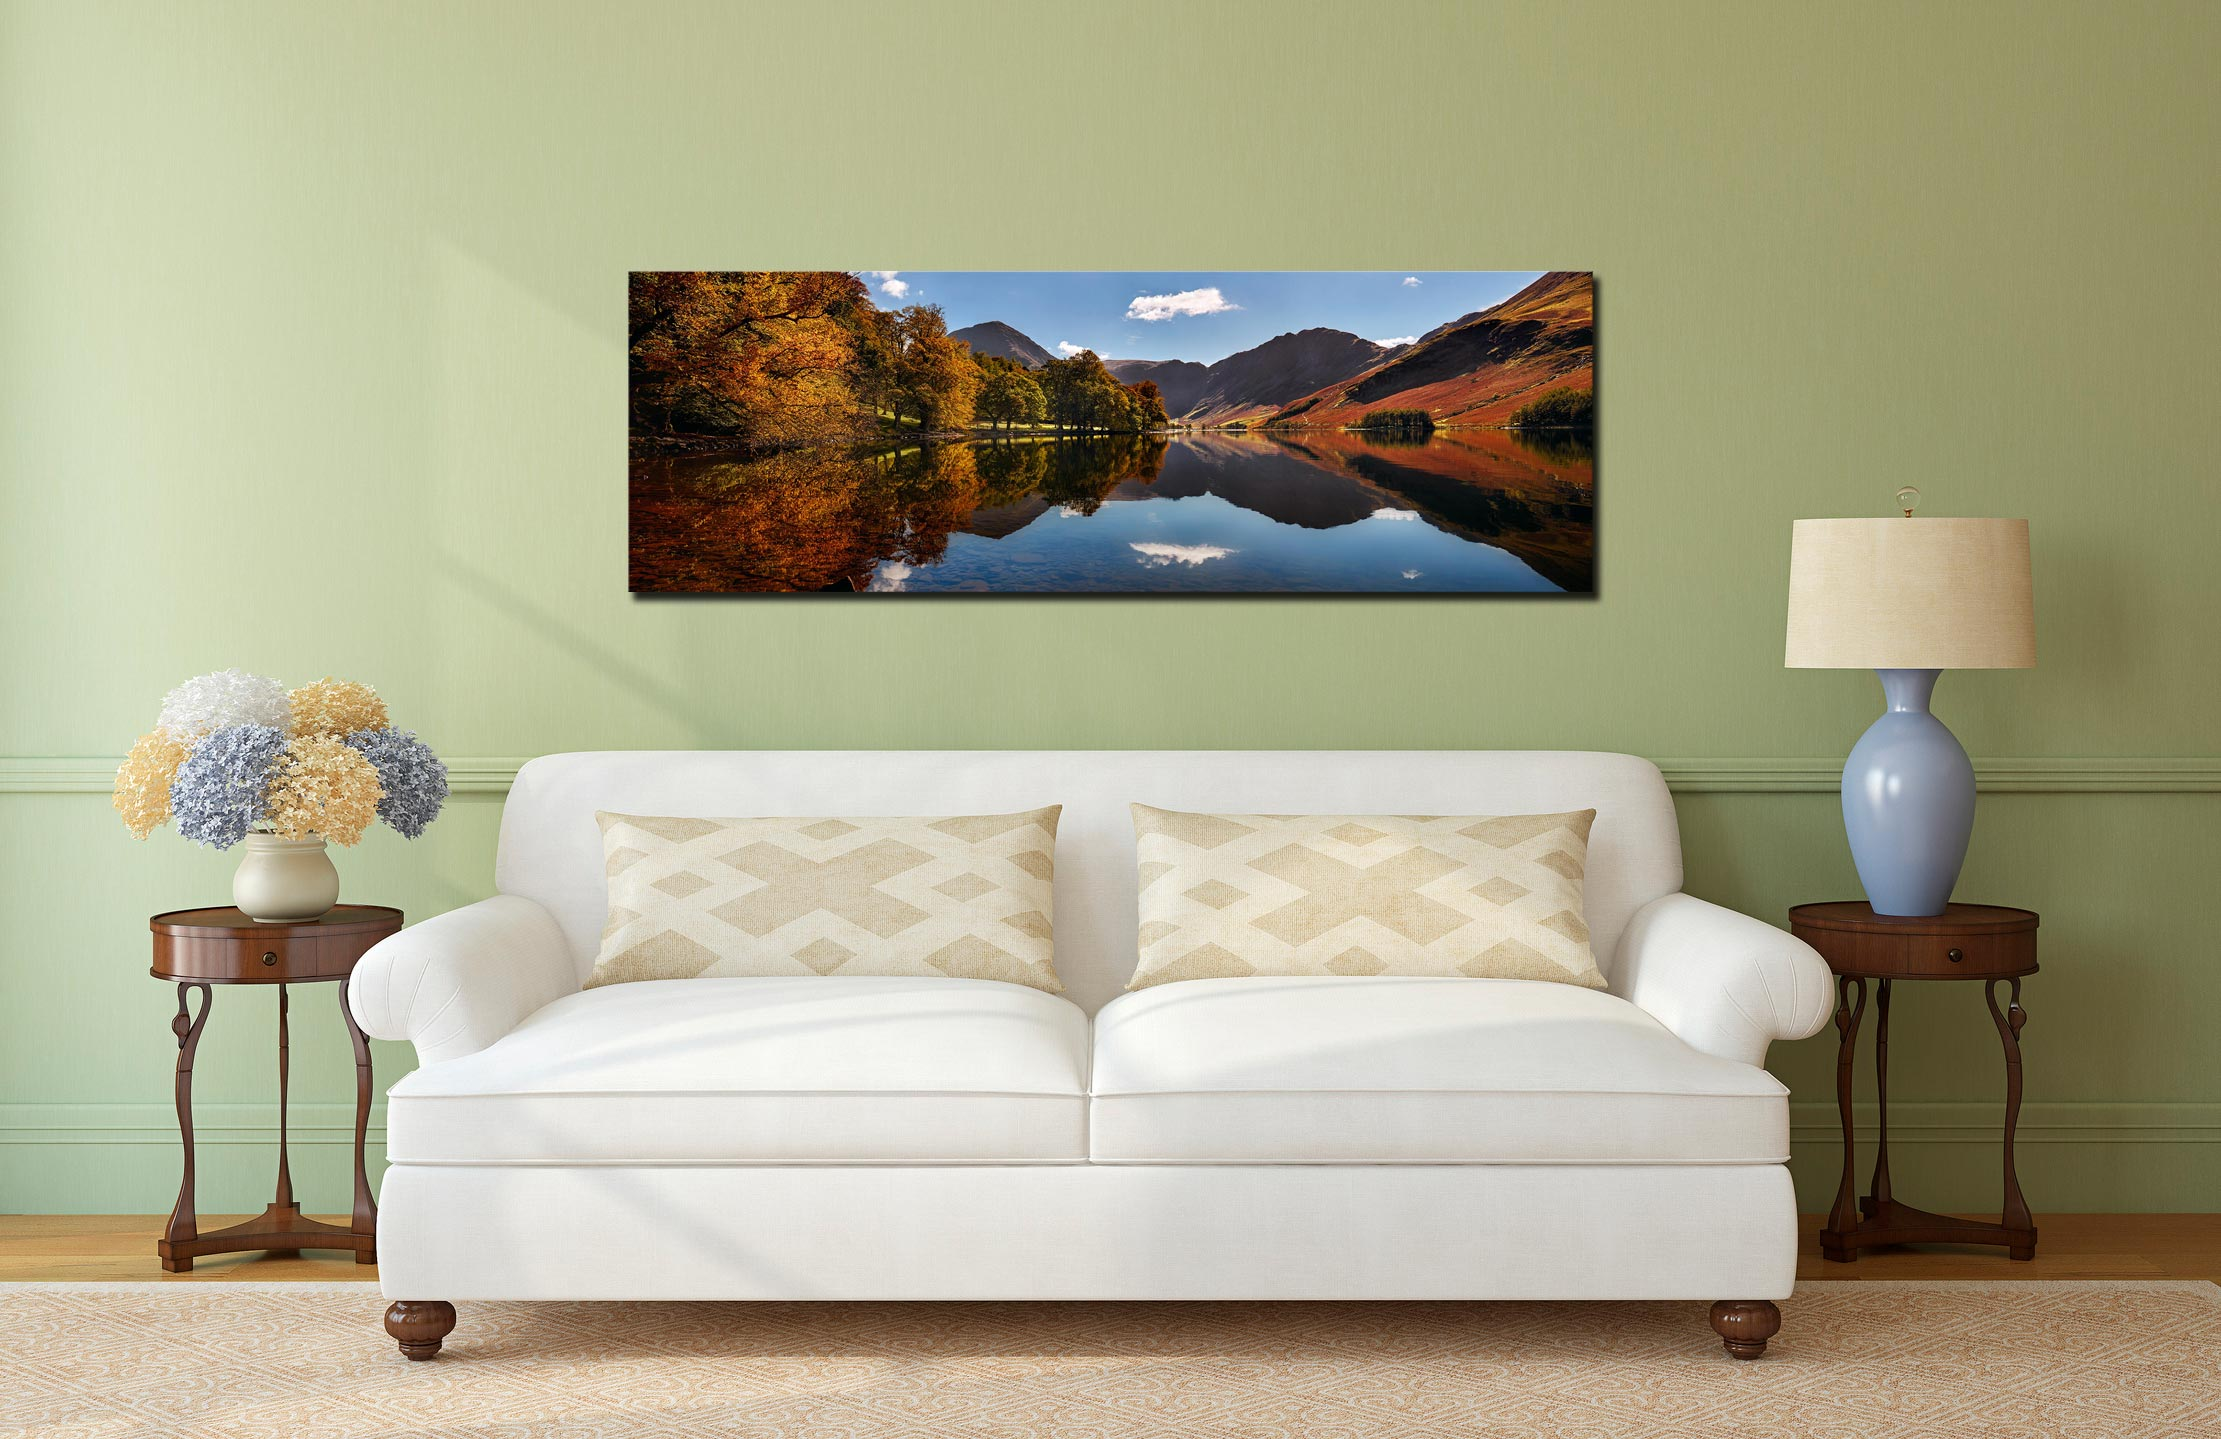 Buttermere Autumn Trees - Print Aluminium Backing With Acrylic Glazing on Wall